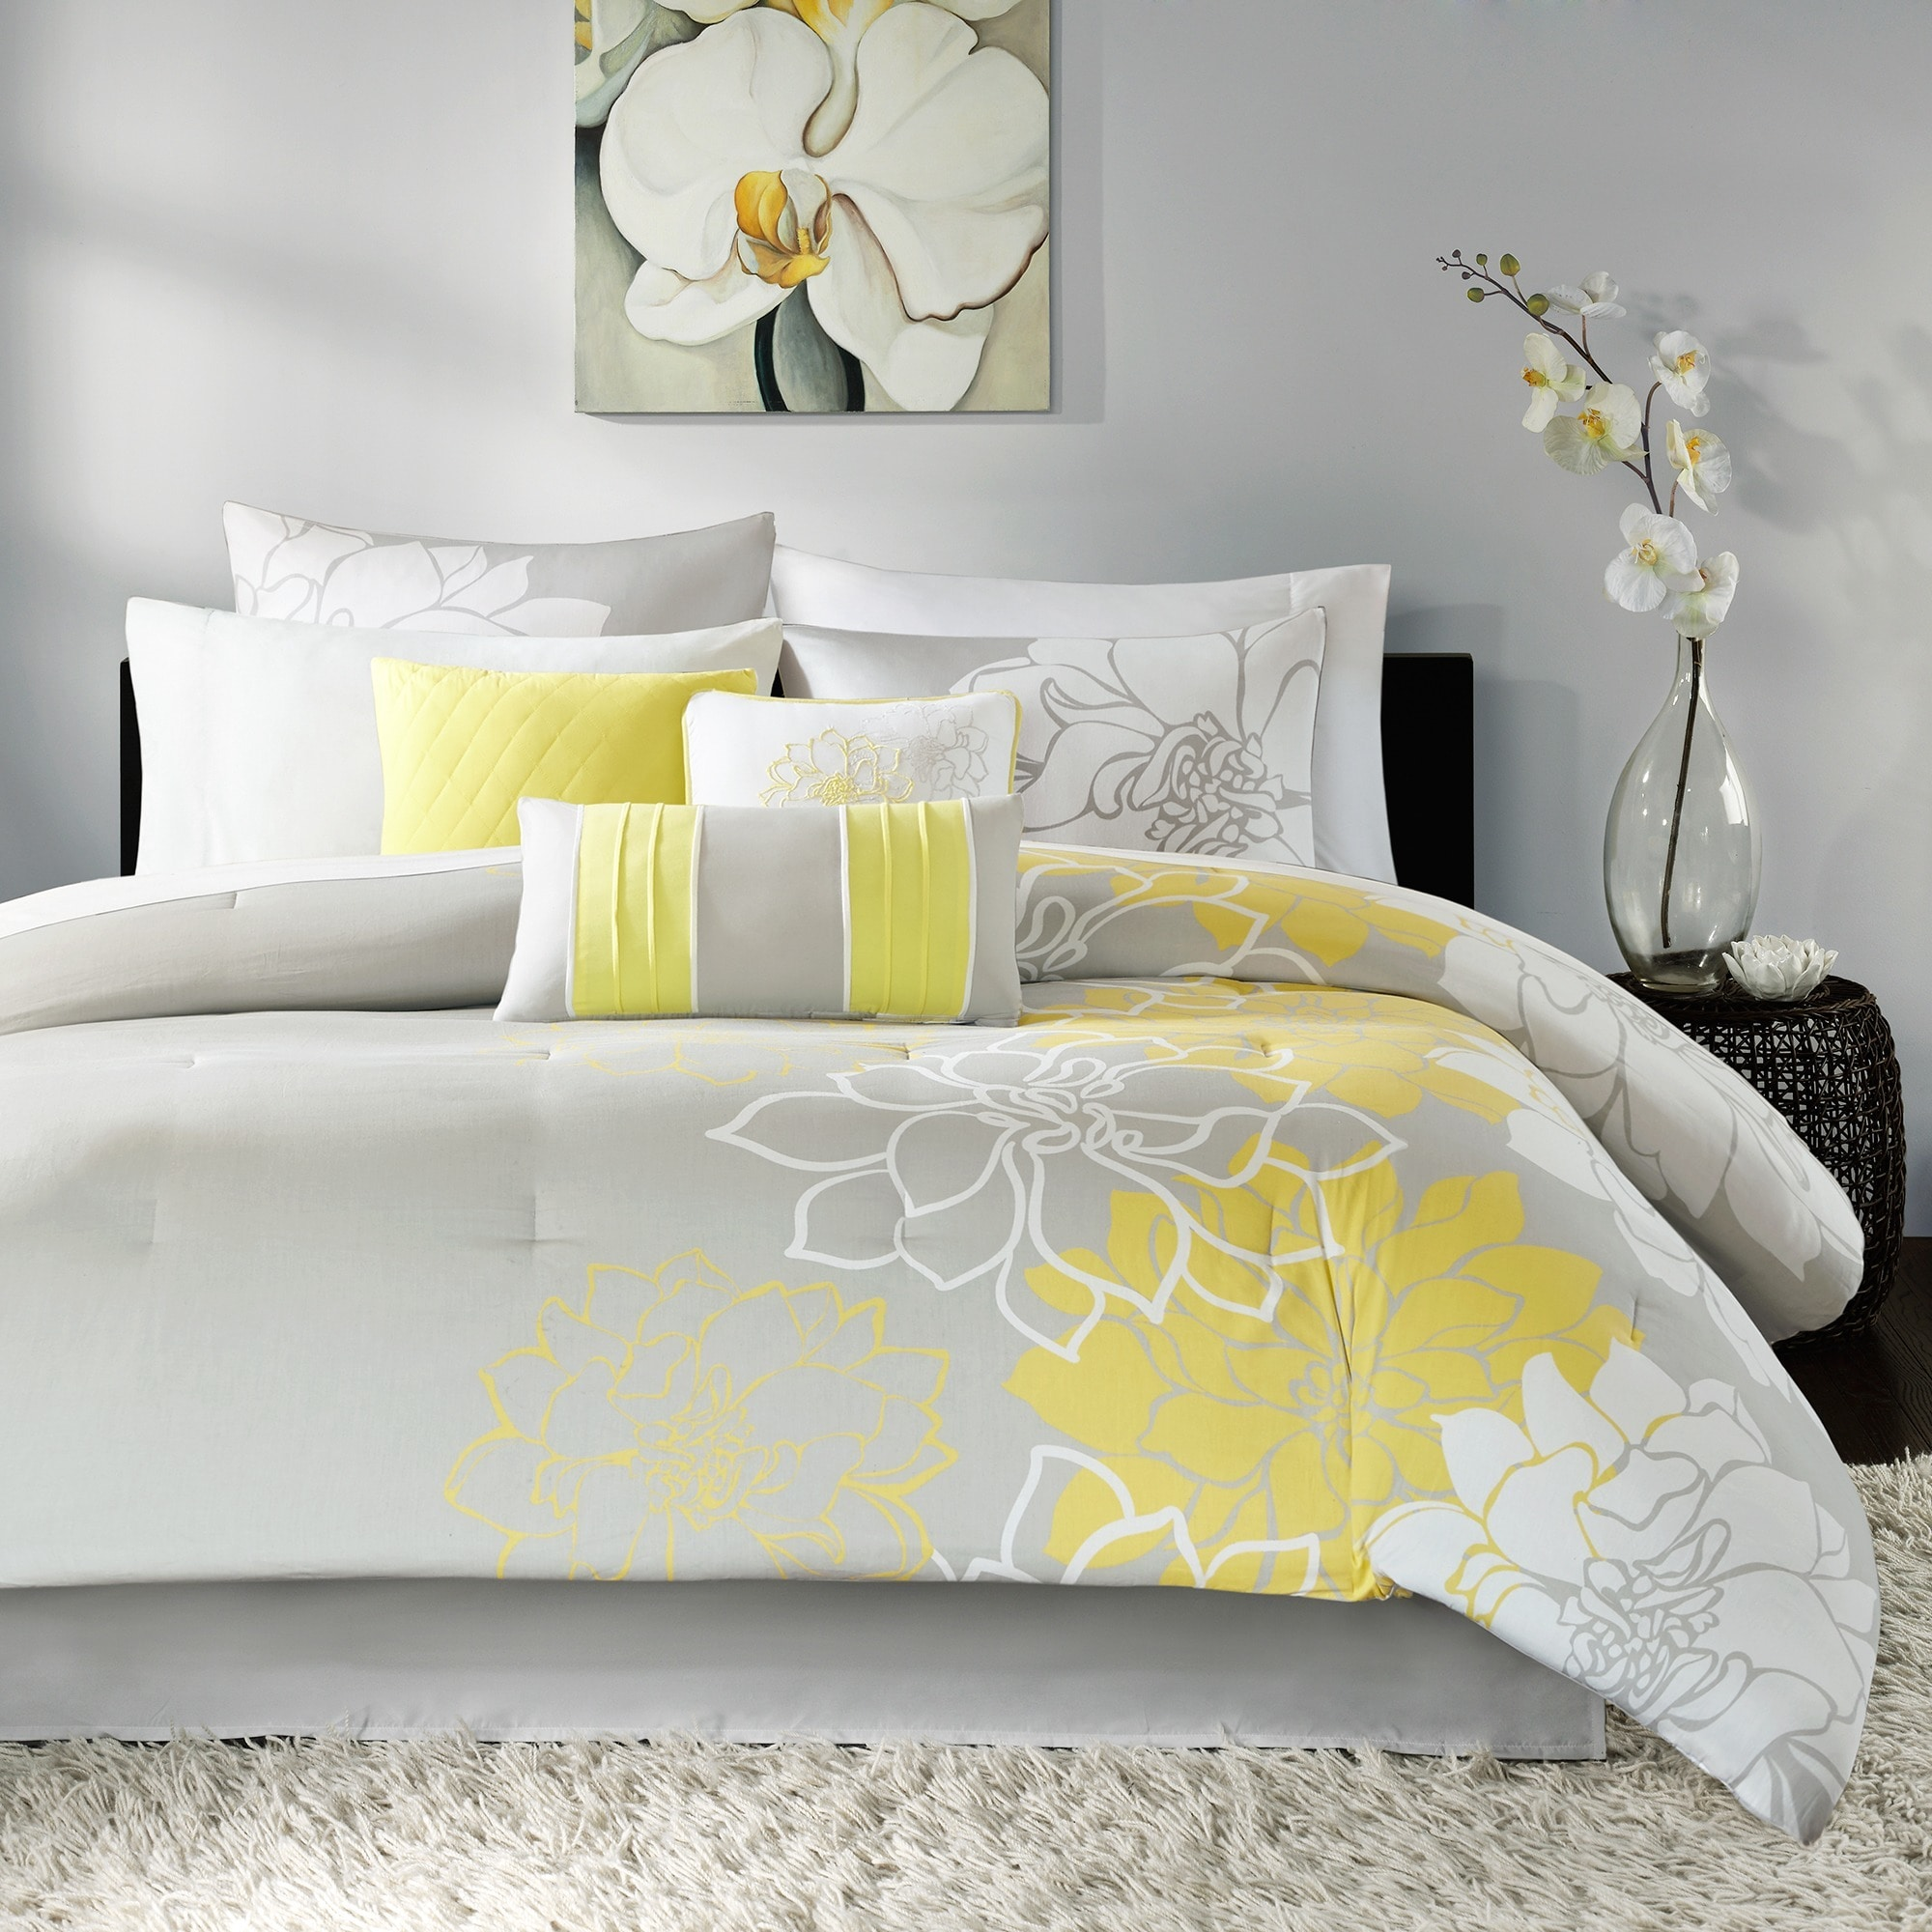 comforter lily intelligent product bed bath today shipping coral com design set overstock free bedding